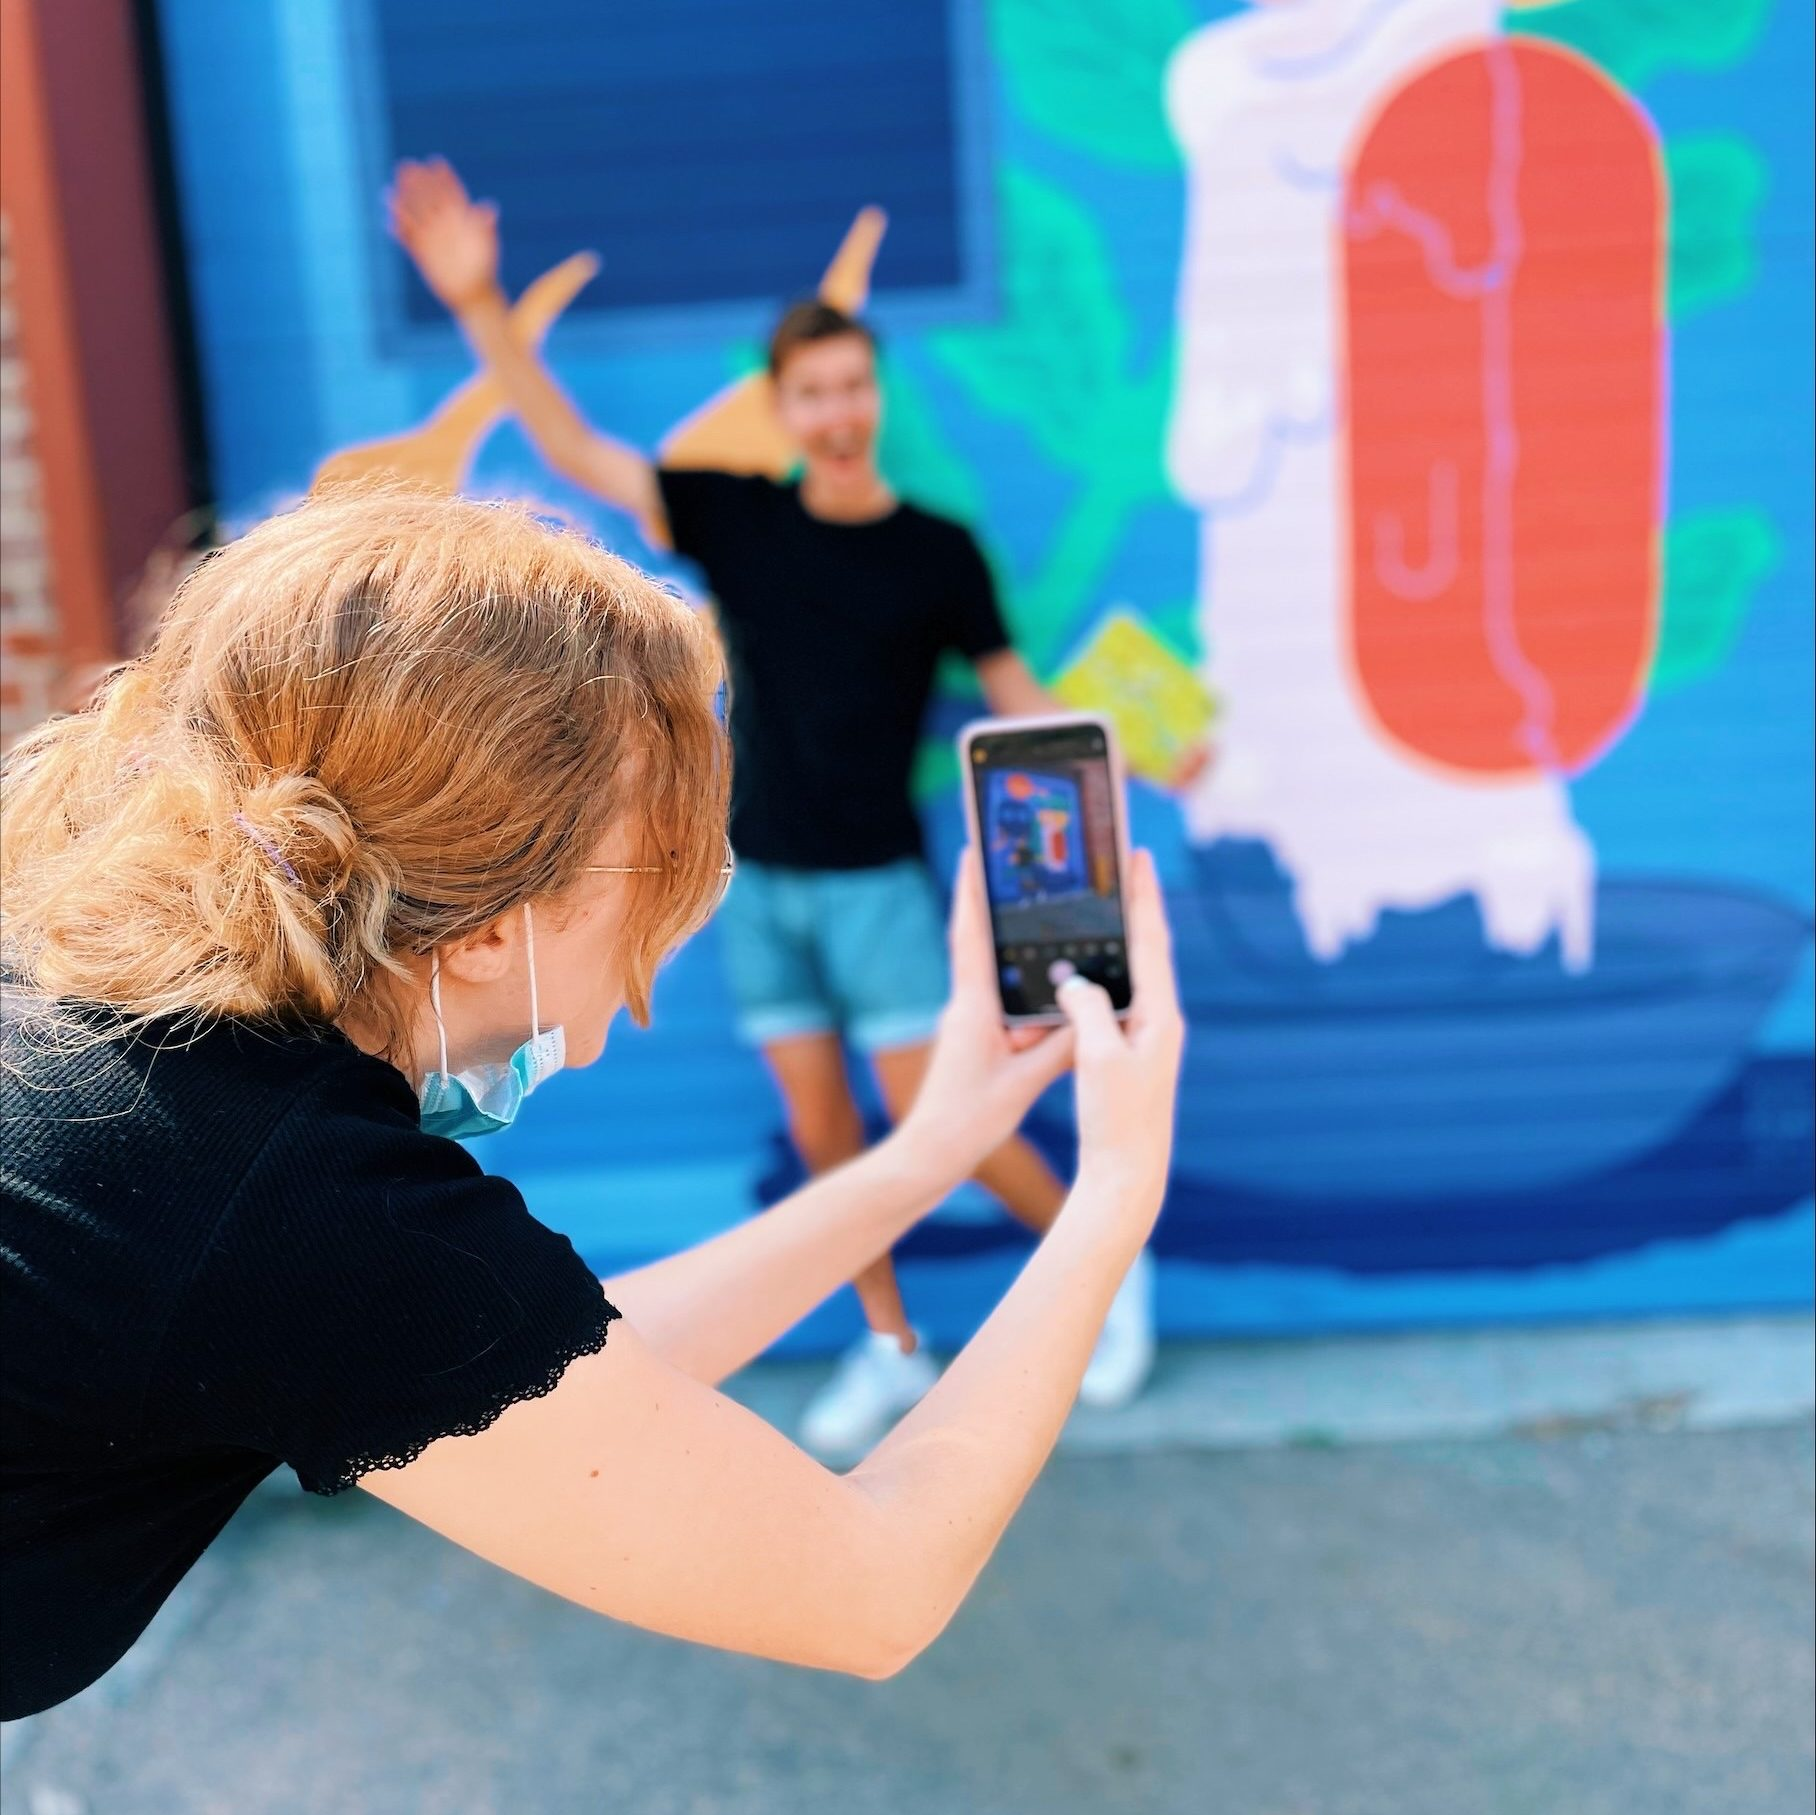 A young woman leans over to take a photo of a young man excitedly throwing his arms out in front of a brightly coloured mural.